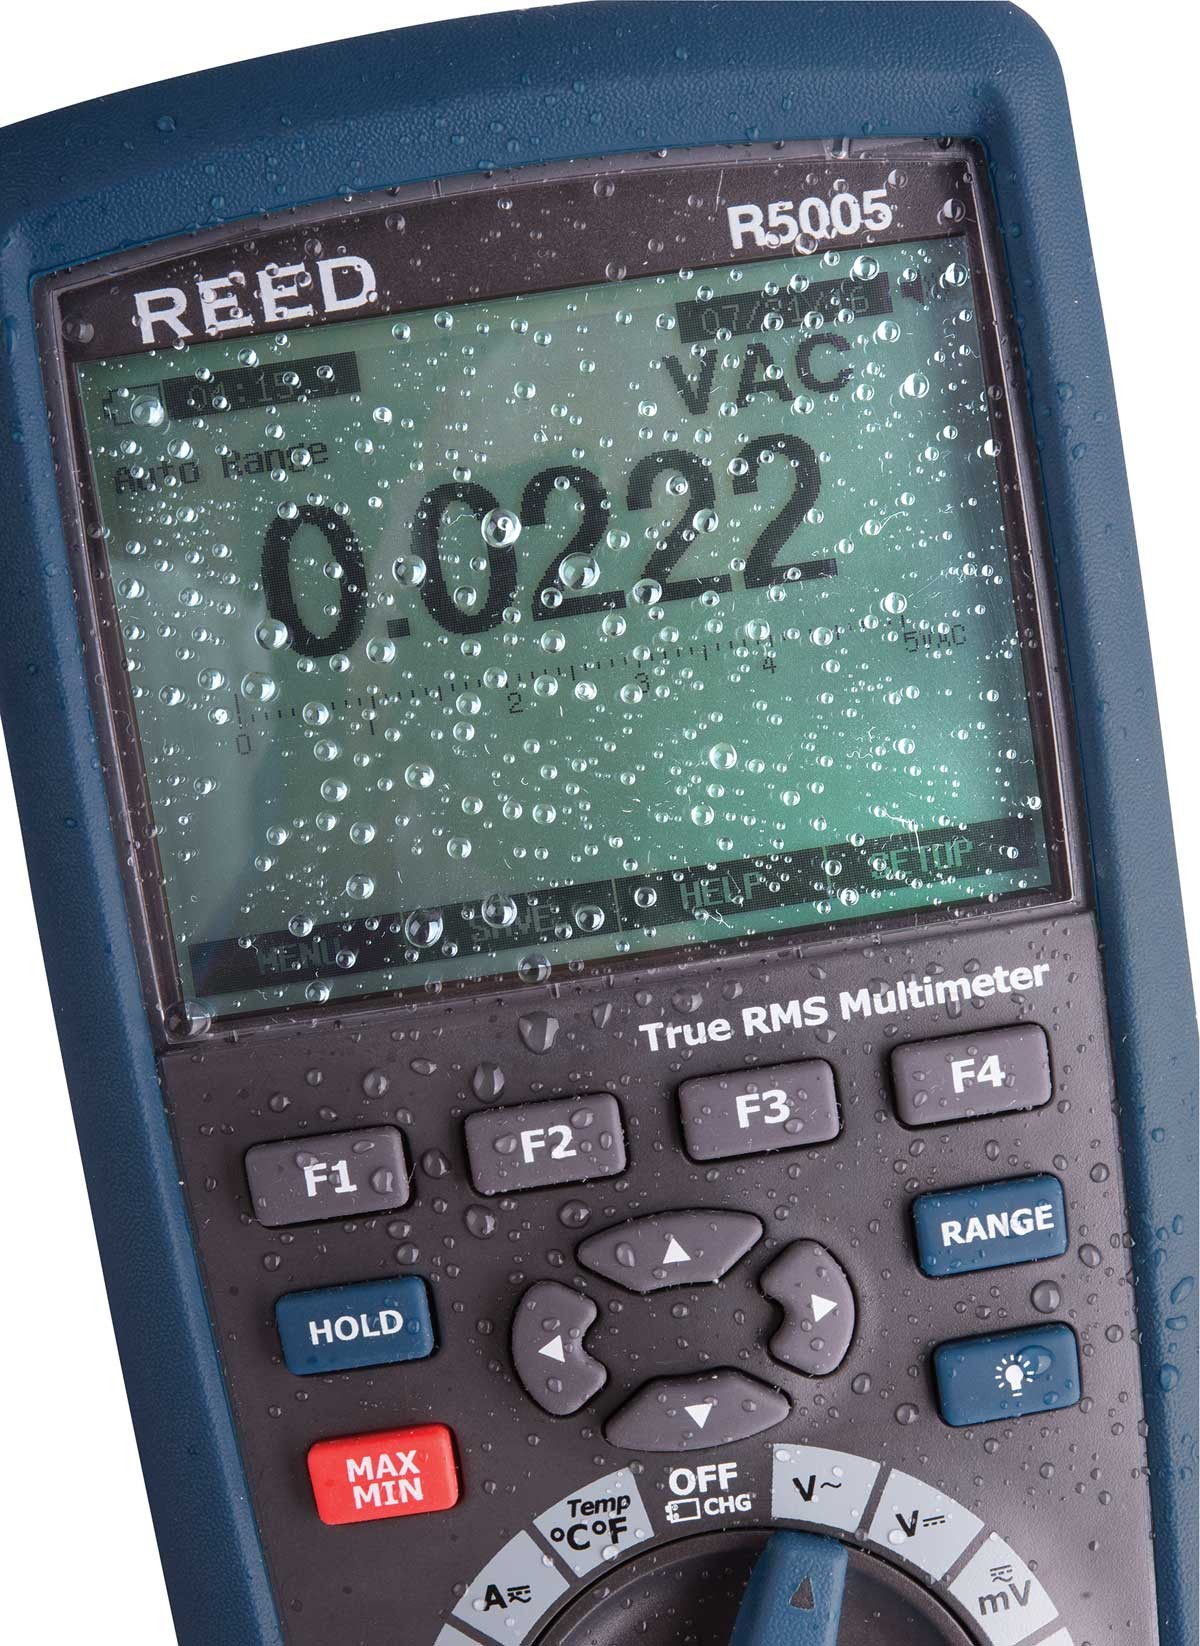 REED R5005 True RMS Industrial Multimeter with Bluetooth-REED R5005 3